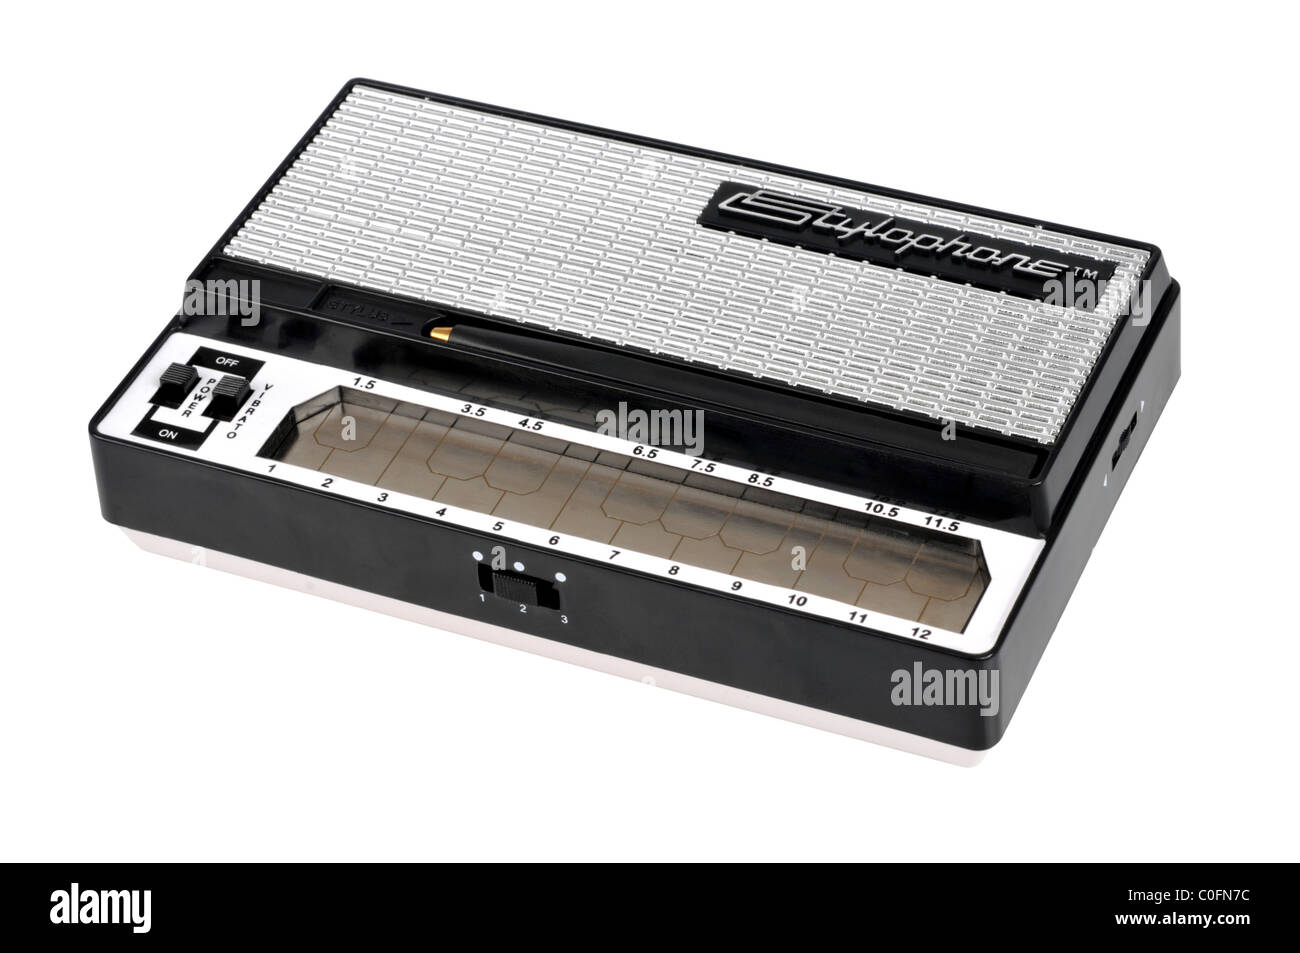 """Stylophone, musical instrument or synthesizer, Stylophone on a """"white background"""" - Stock Image"""